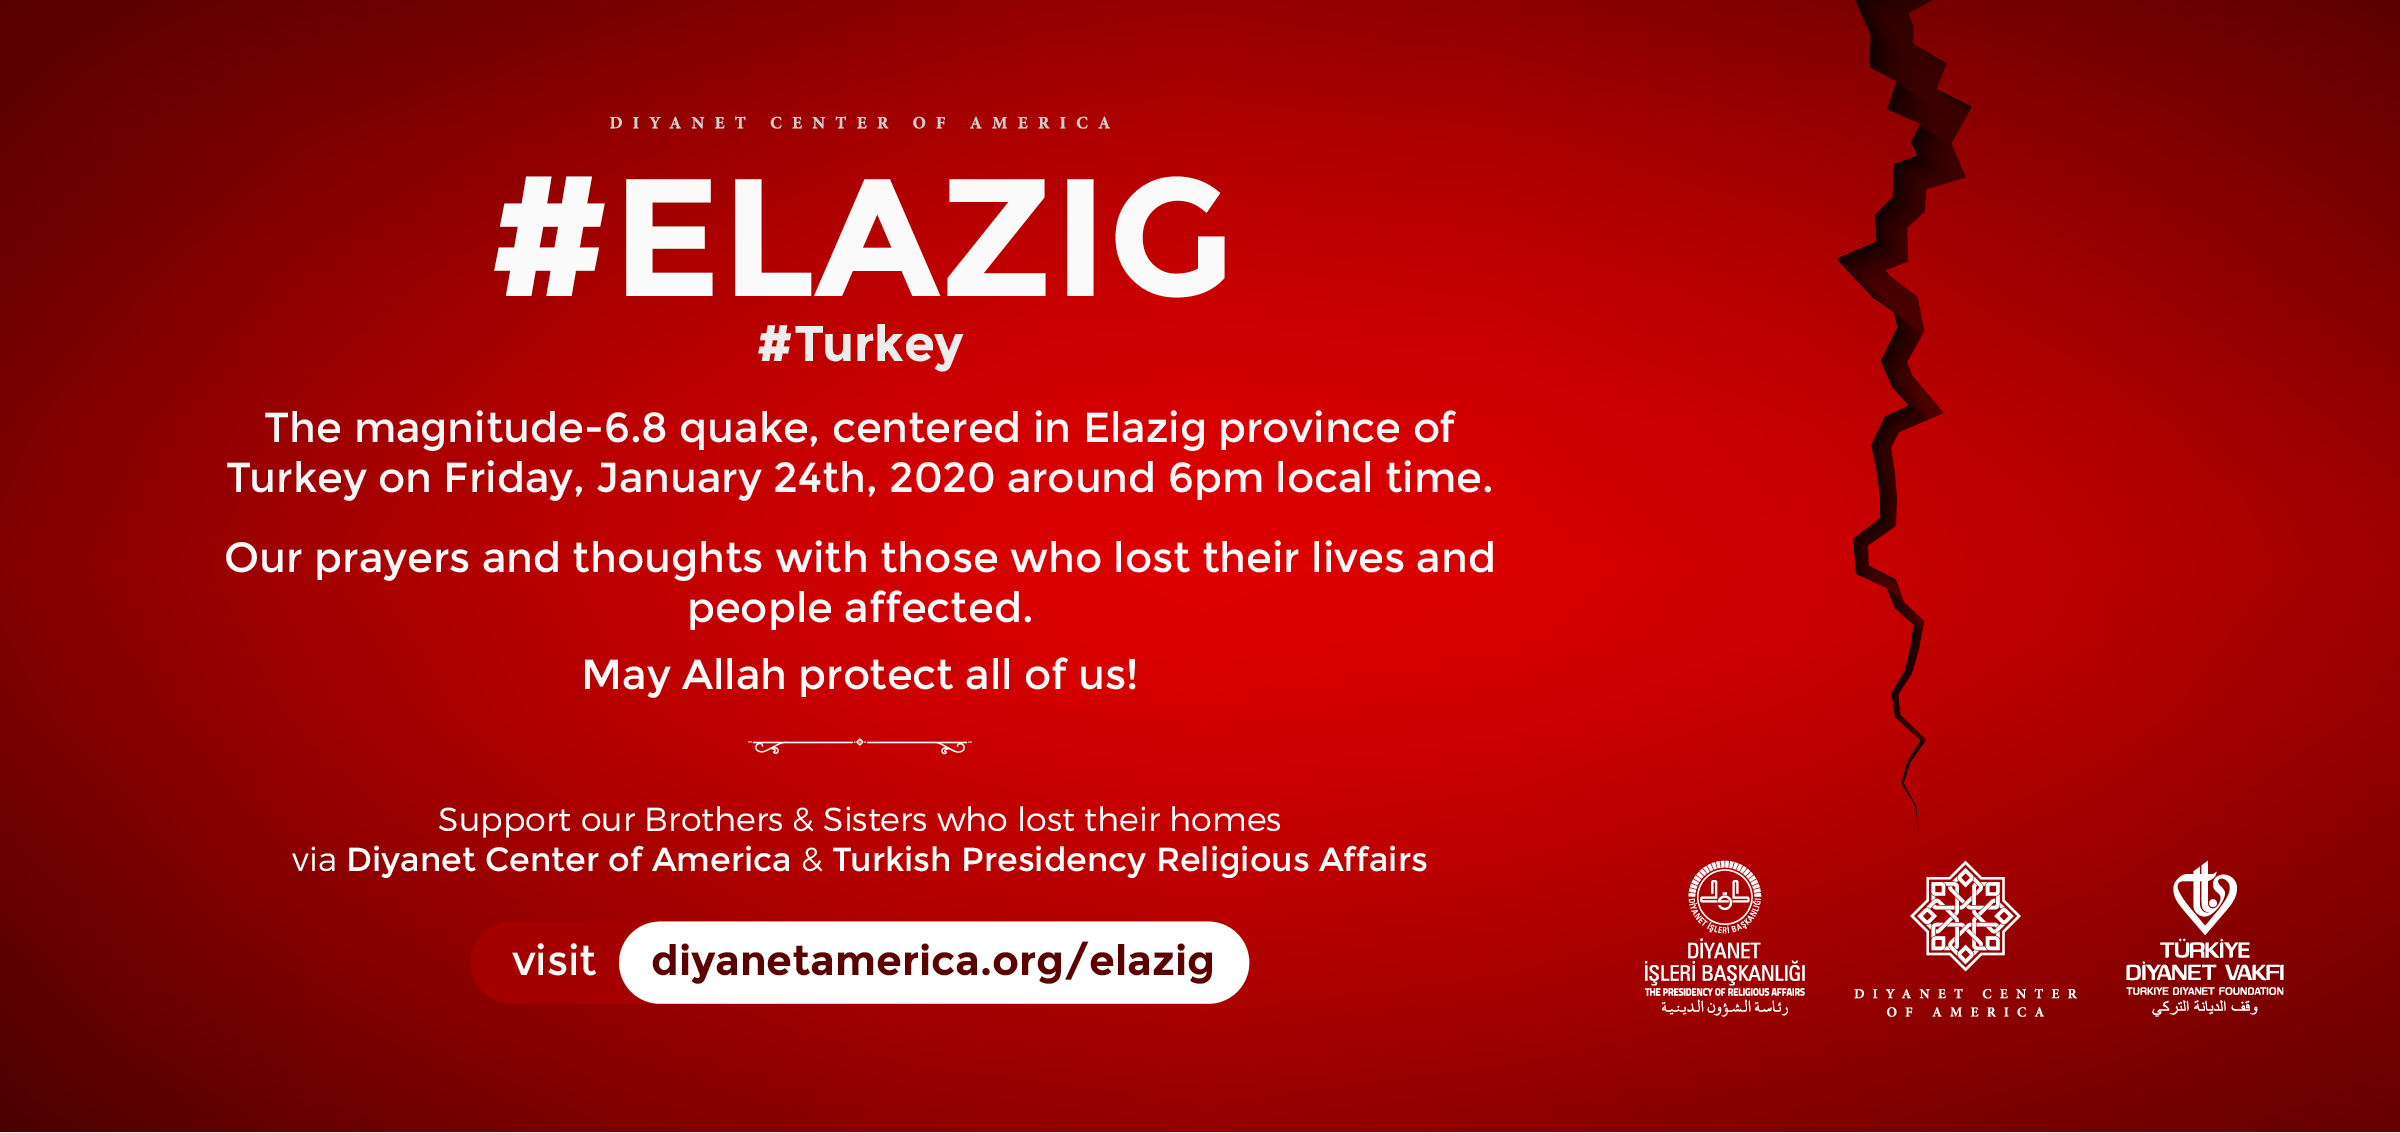 Elazig Earthquake Support Fund